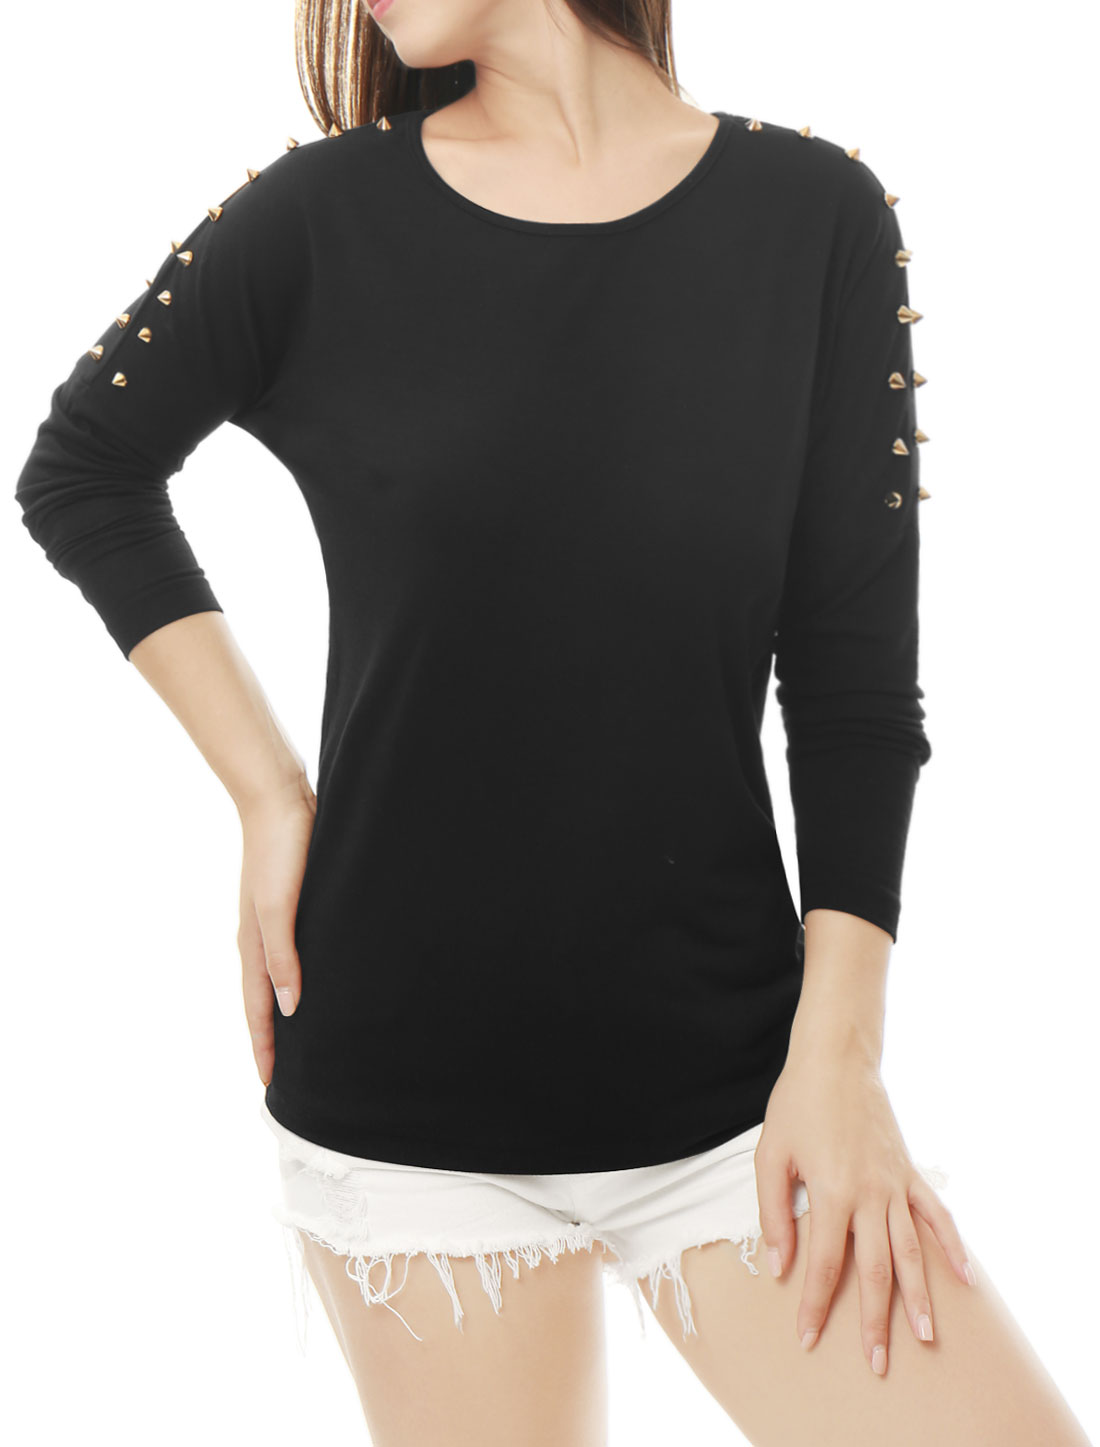 Women Round Neck Studs Embellished Dolman Sleeves Top Black XS